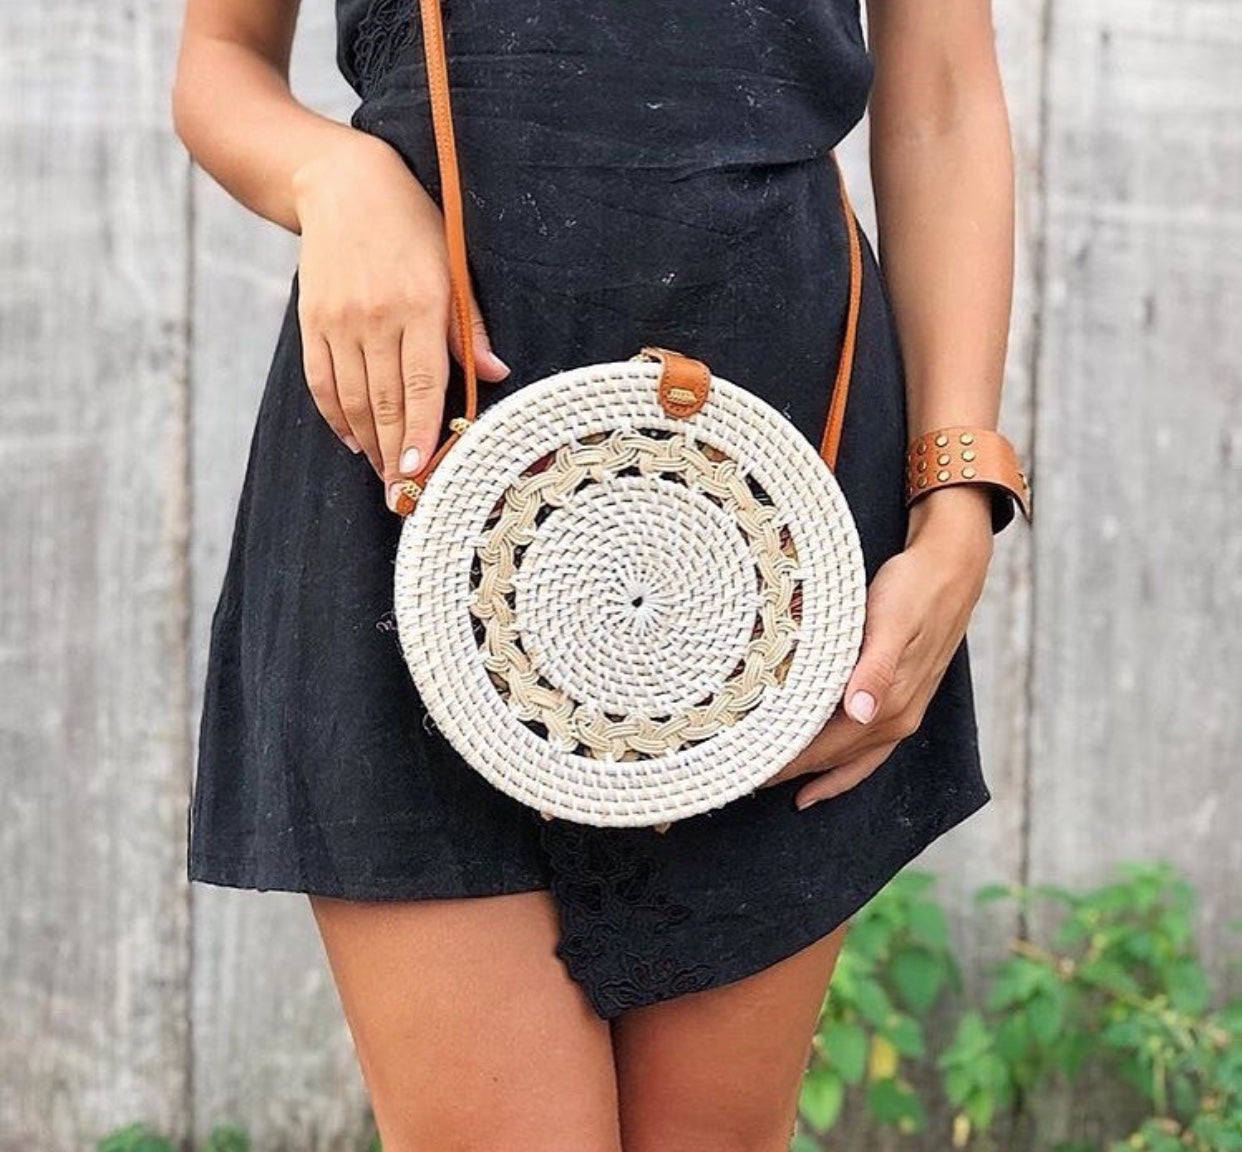 Round woven bags Bali bohemian white patterned